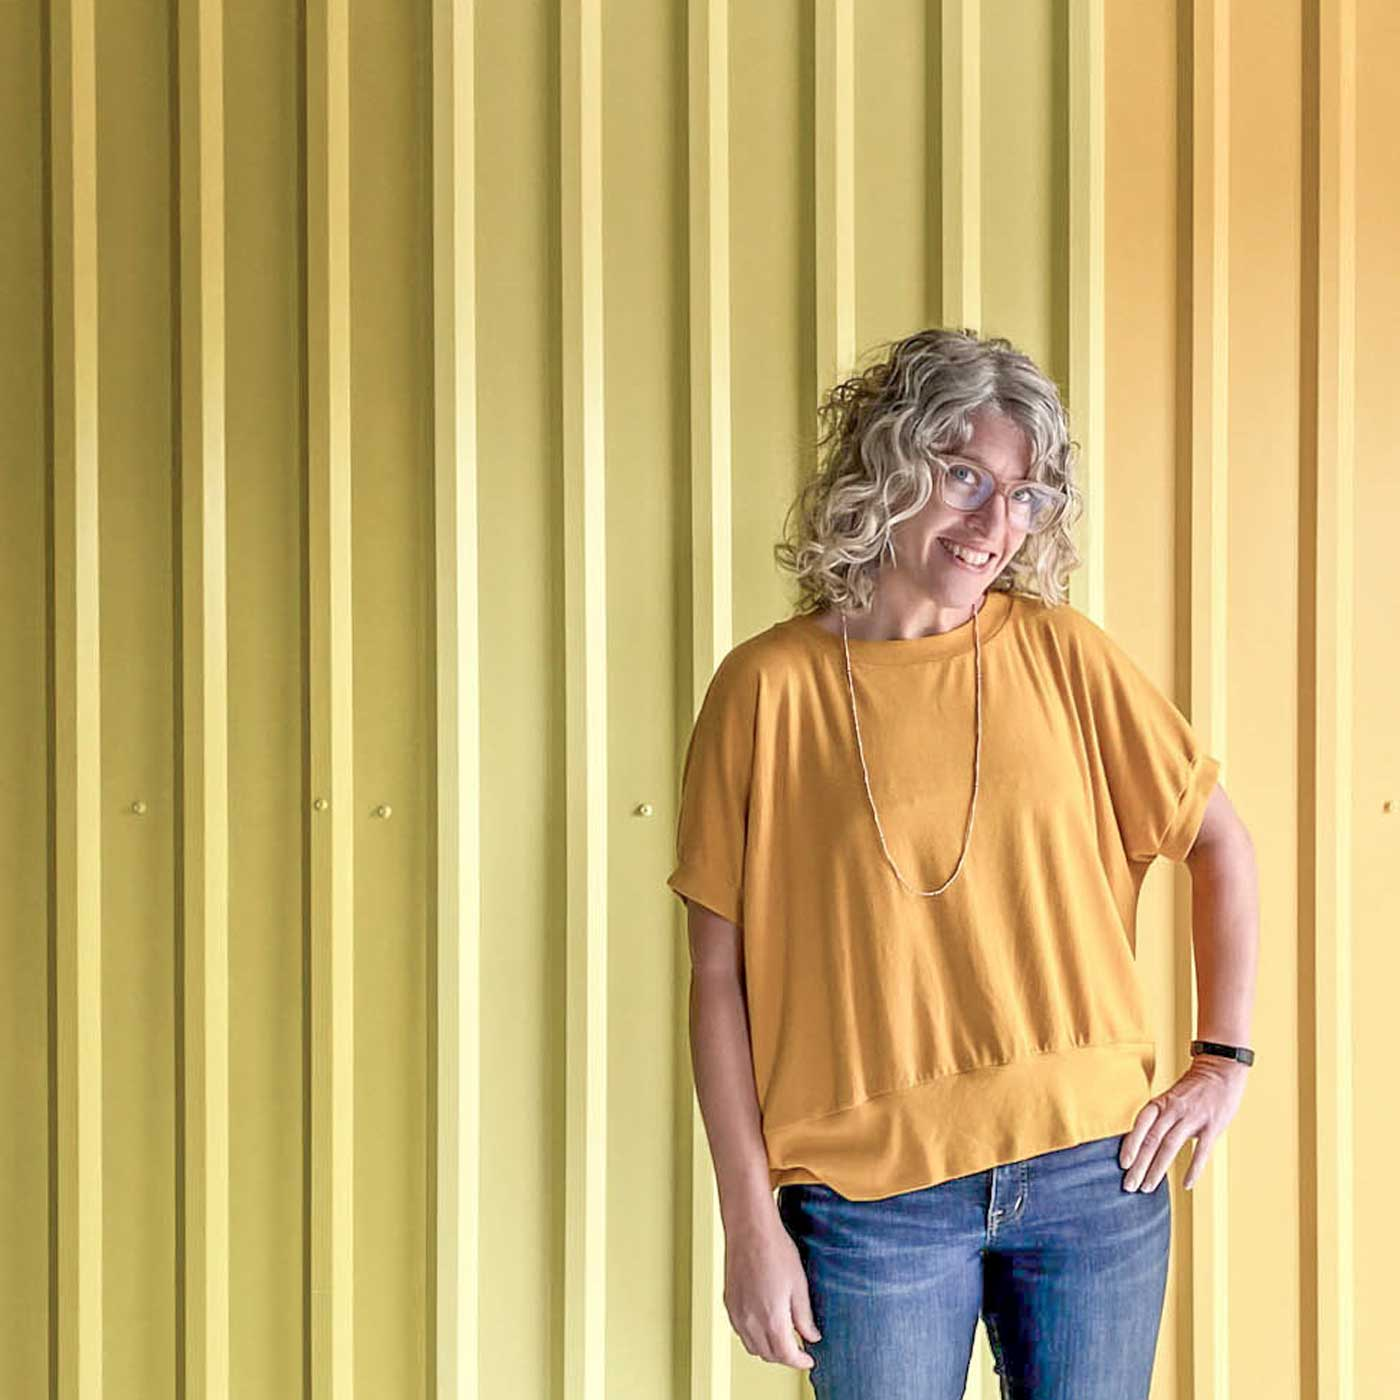 Jaime wearing a golden yellow Hosta tee standing in front of yellow ombre wall.